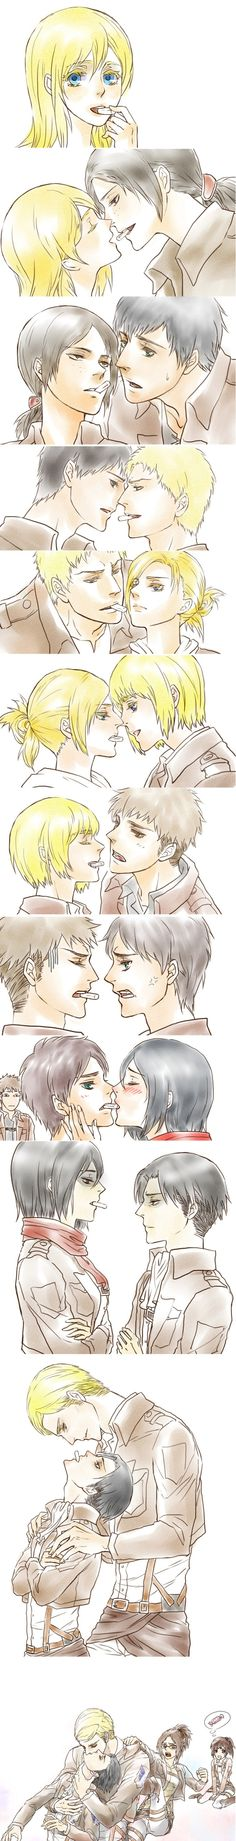 Attack on Titan..... I don't ship lots of them, like Mikasa x Eren or Erwin x Levi but this pic totally cute :)